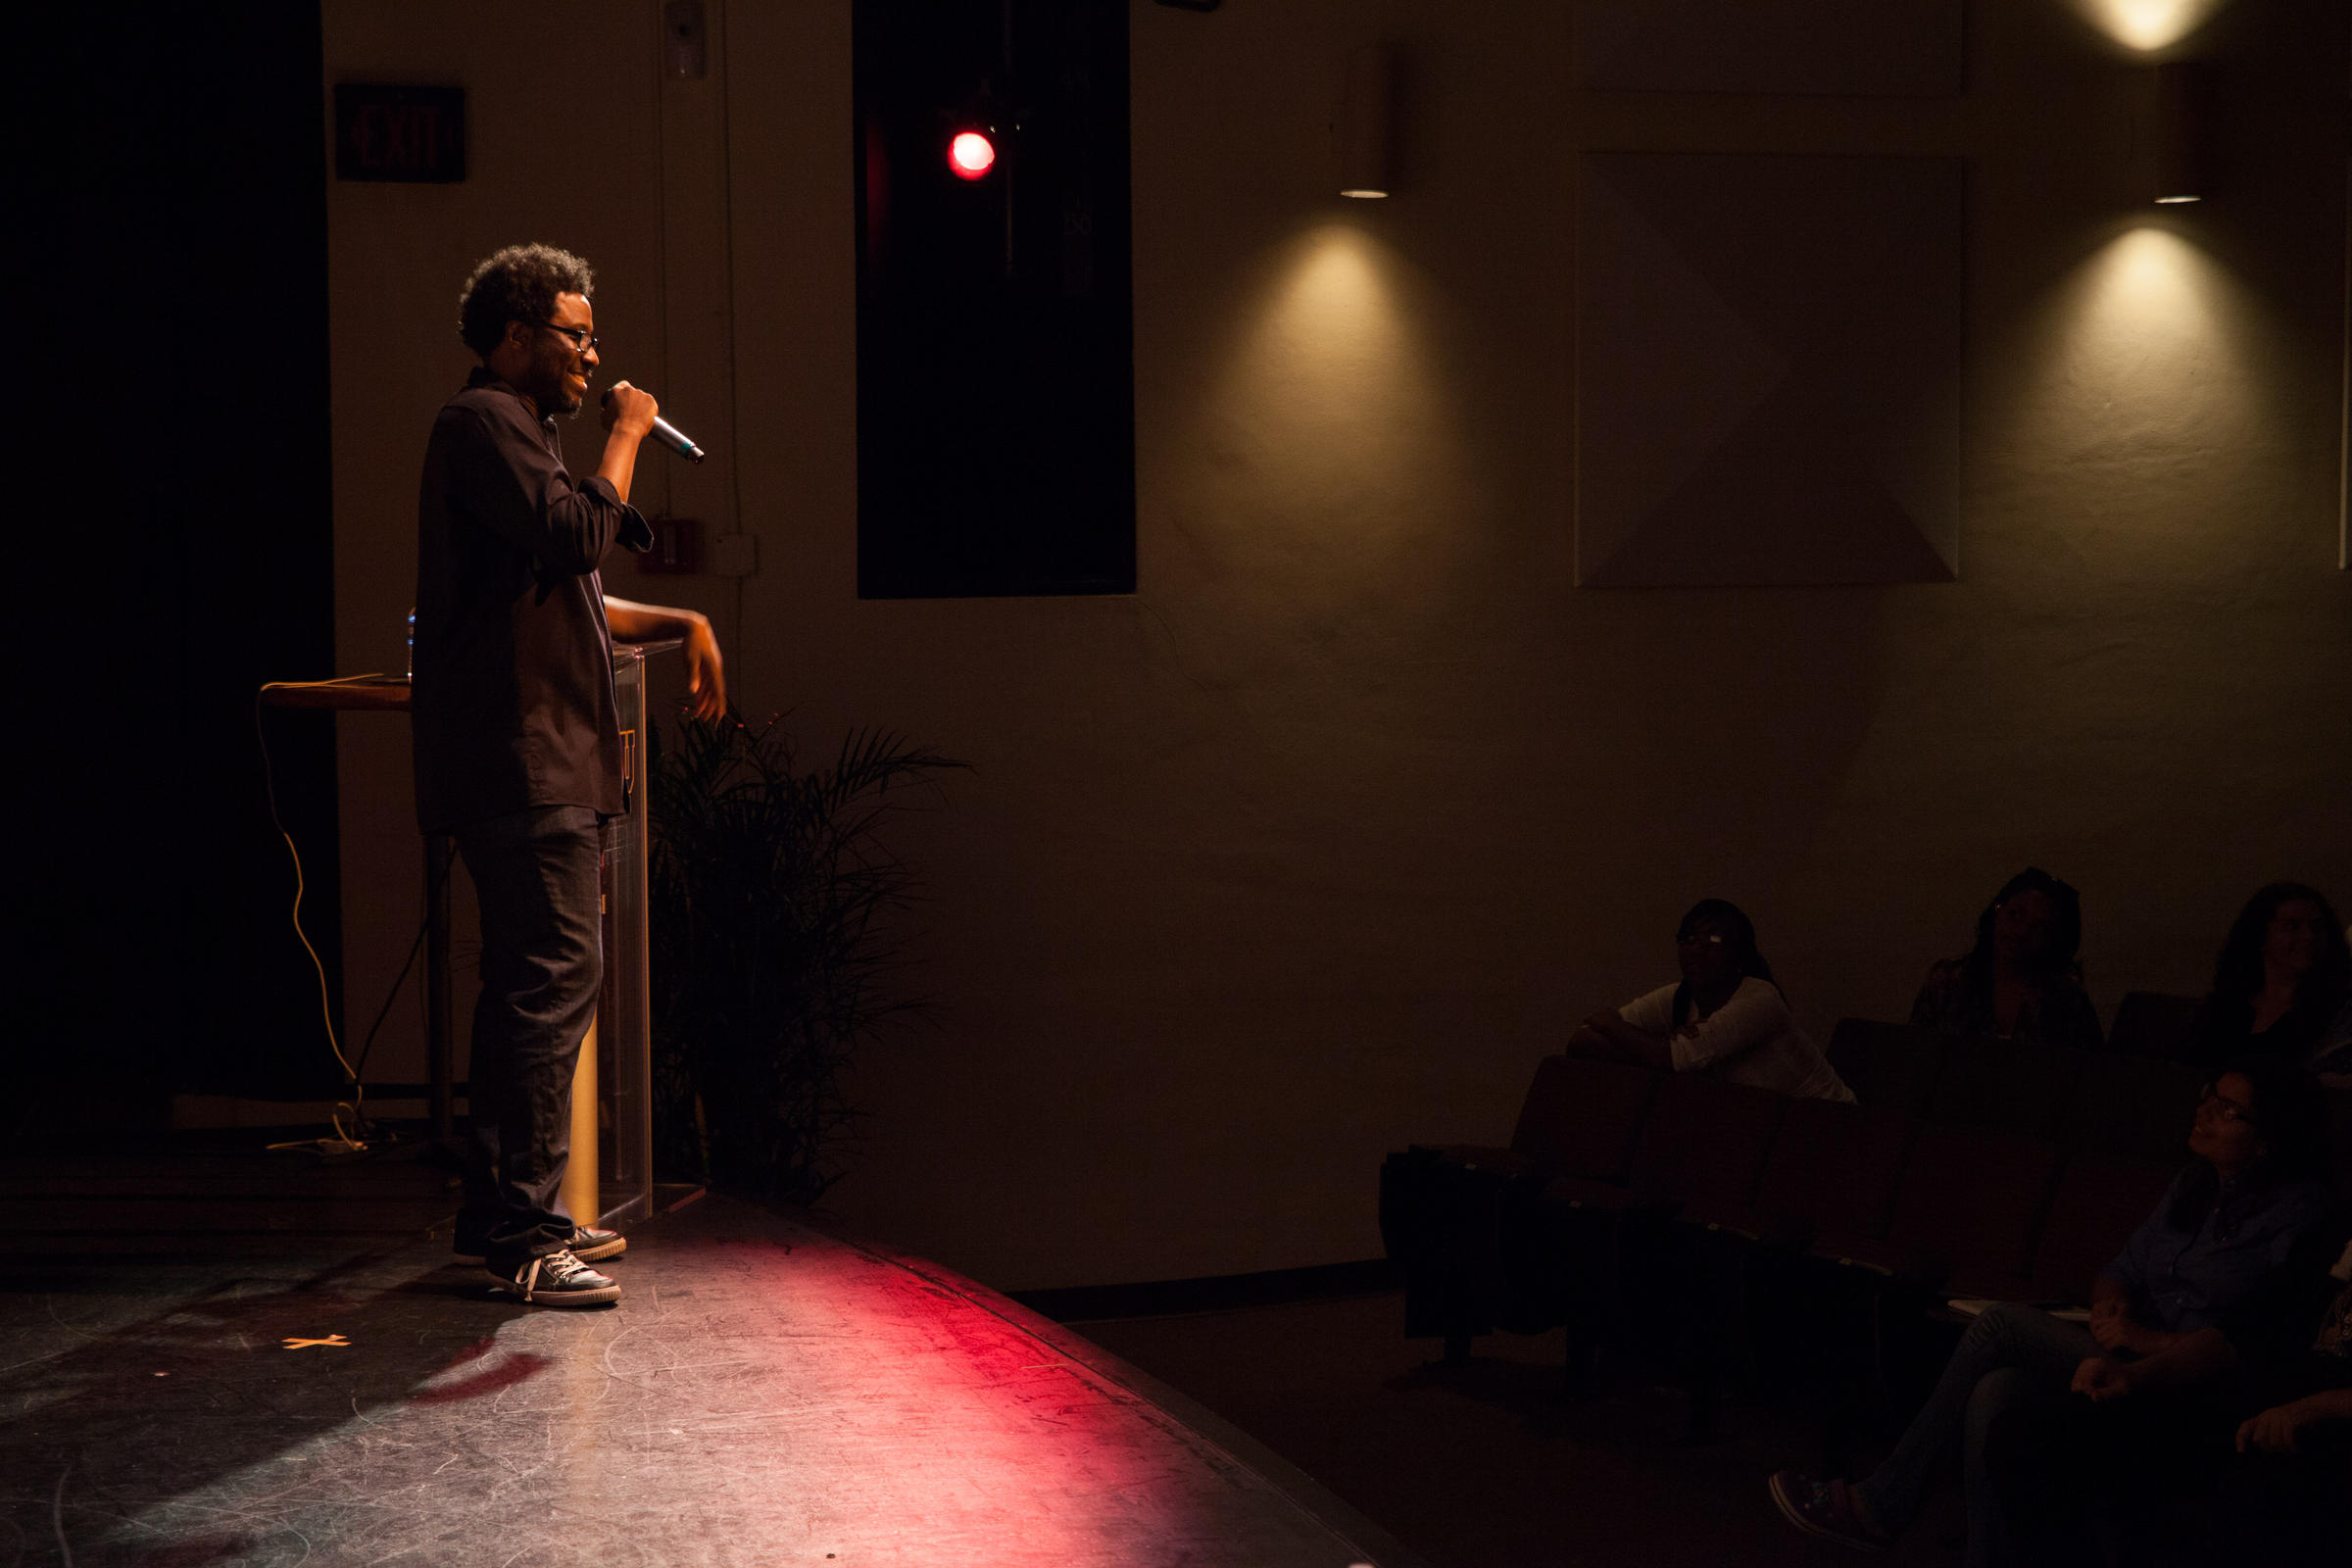 Caption: Comedian W. Kamau Bell performing his stand up act, Credit: flickr user Florida International University